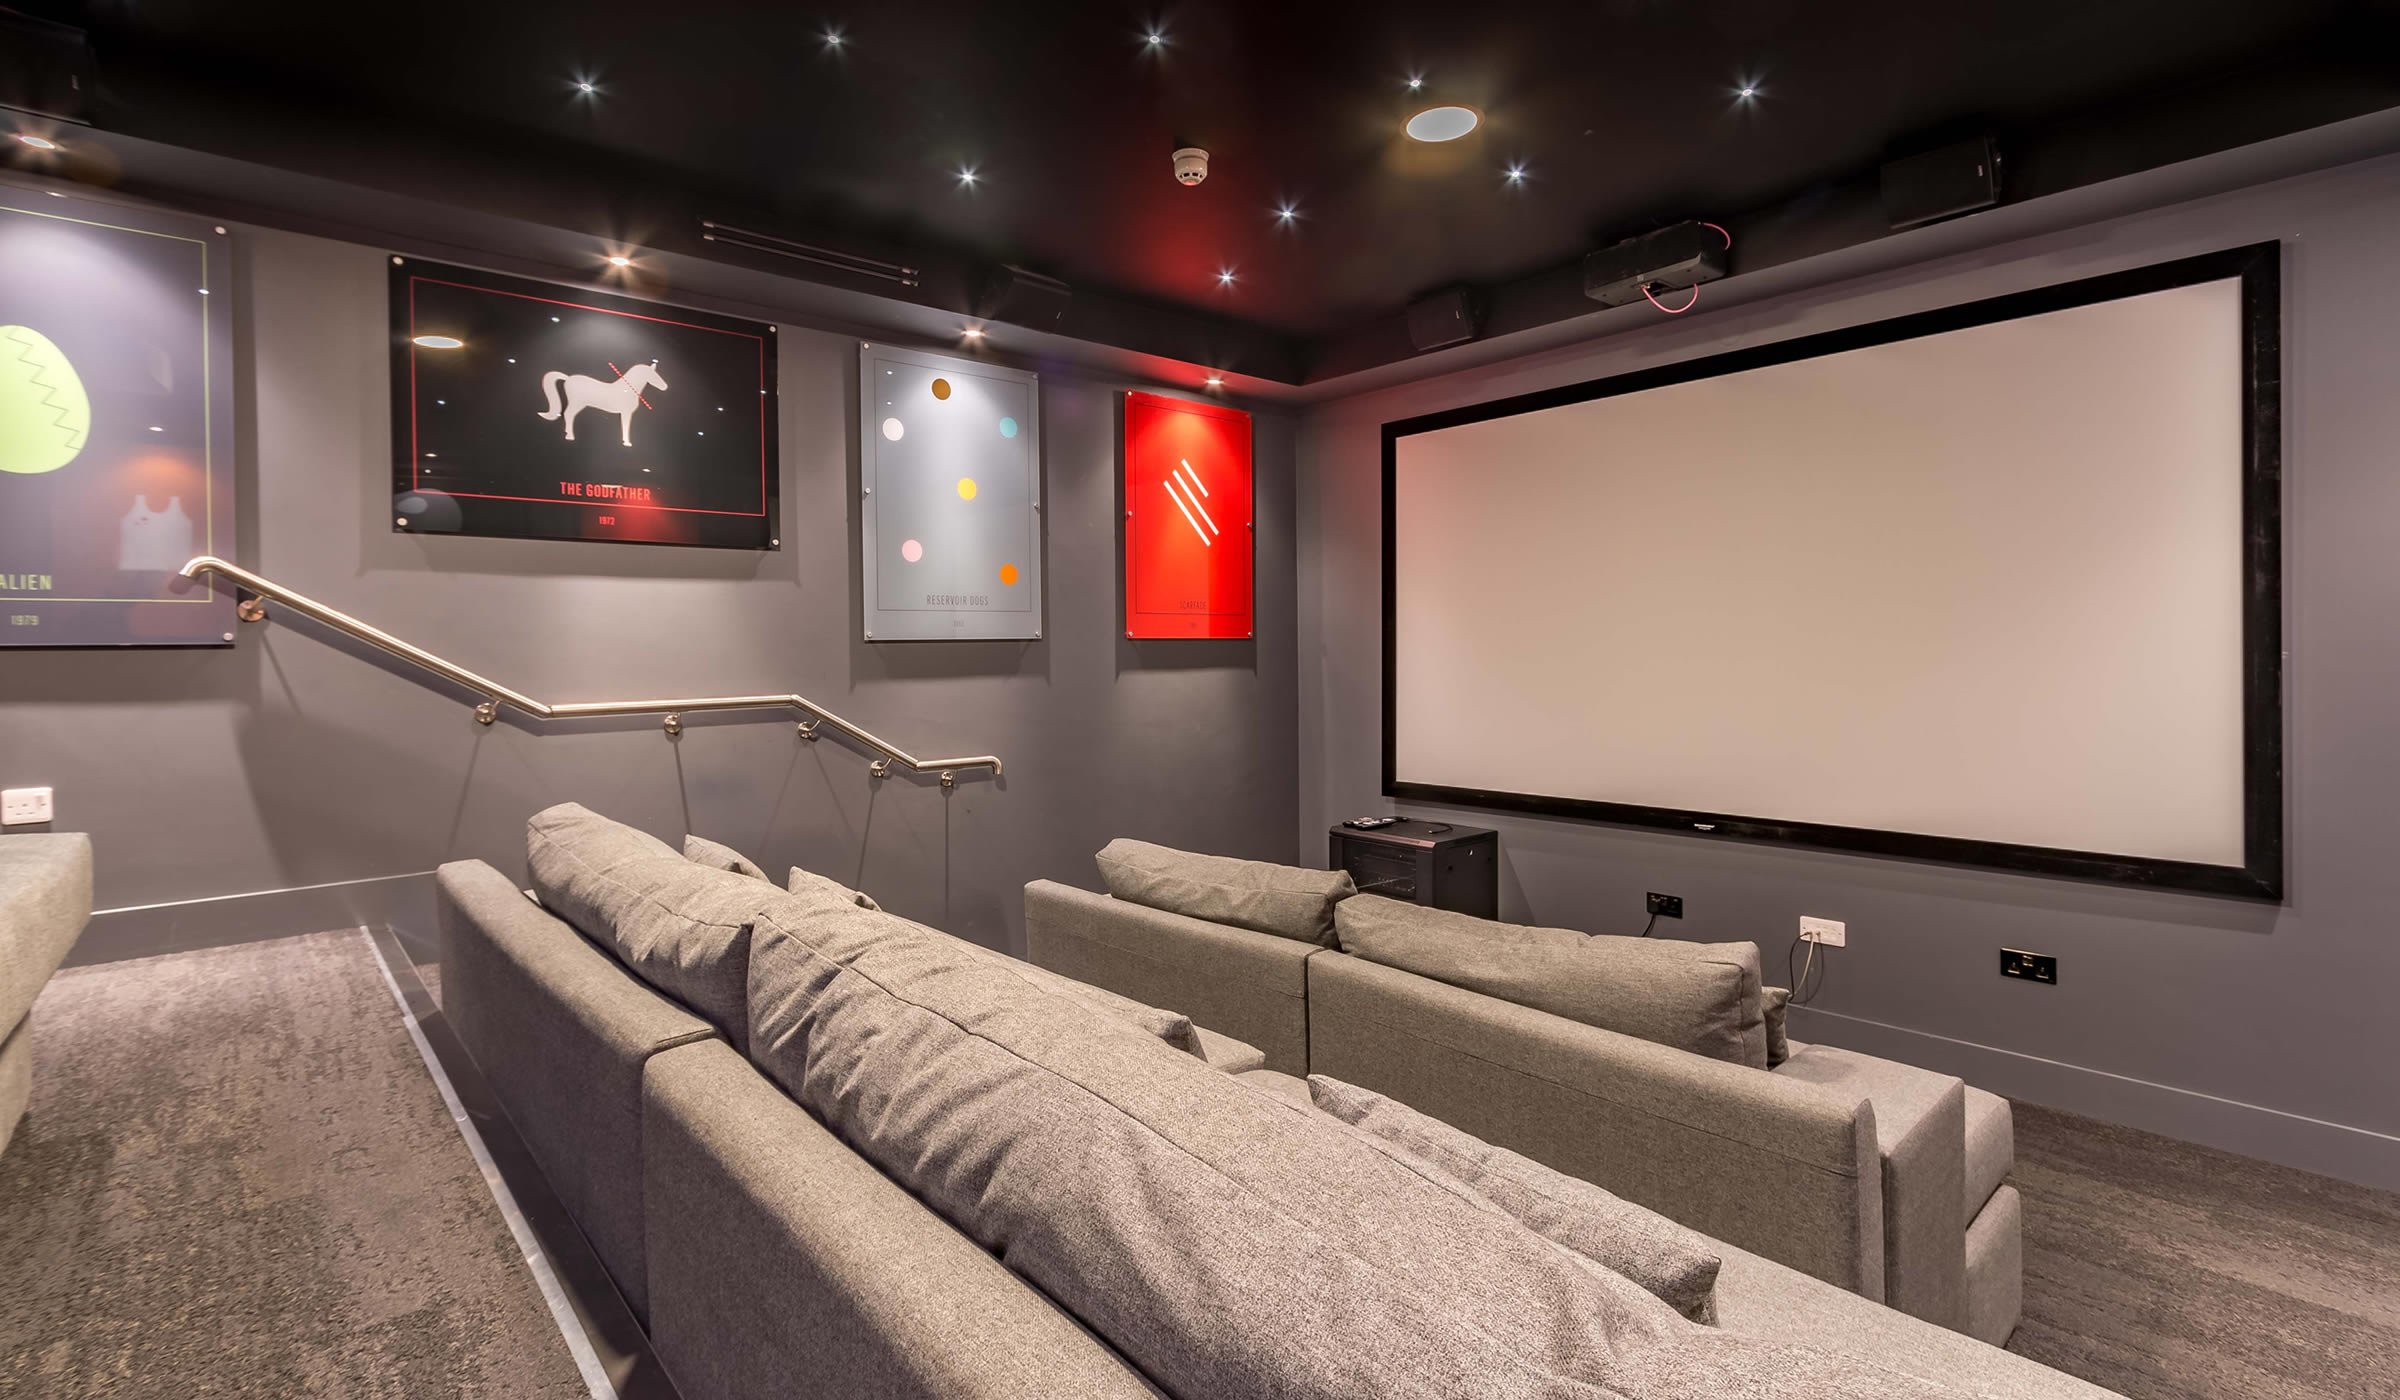 Vibe student accommodation cinema room